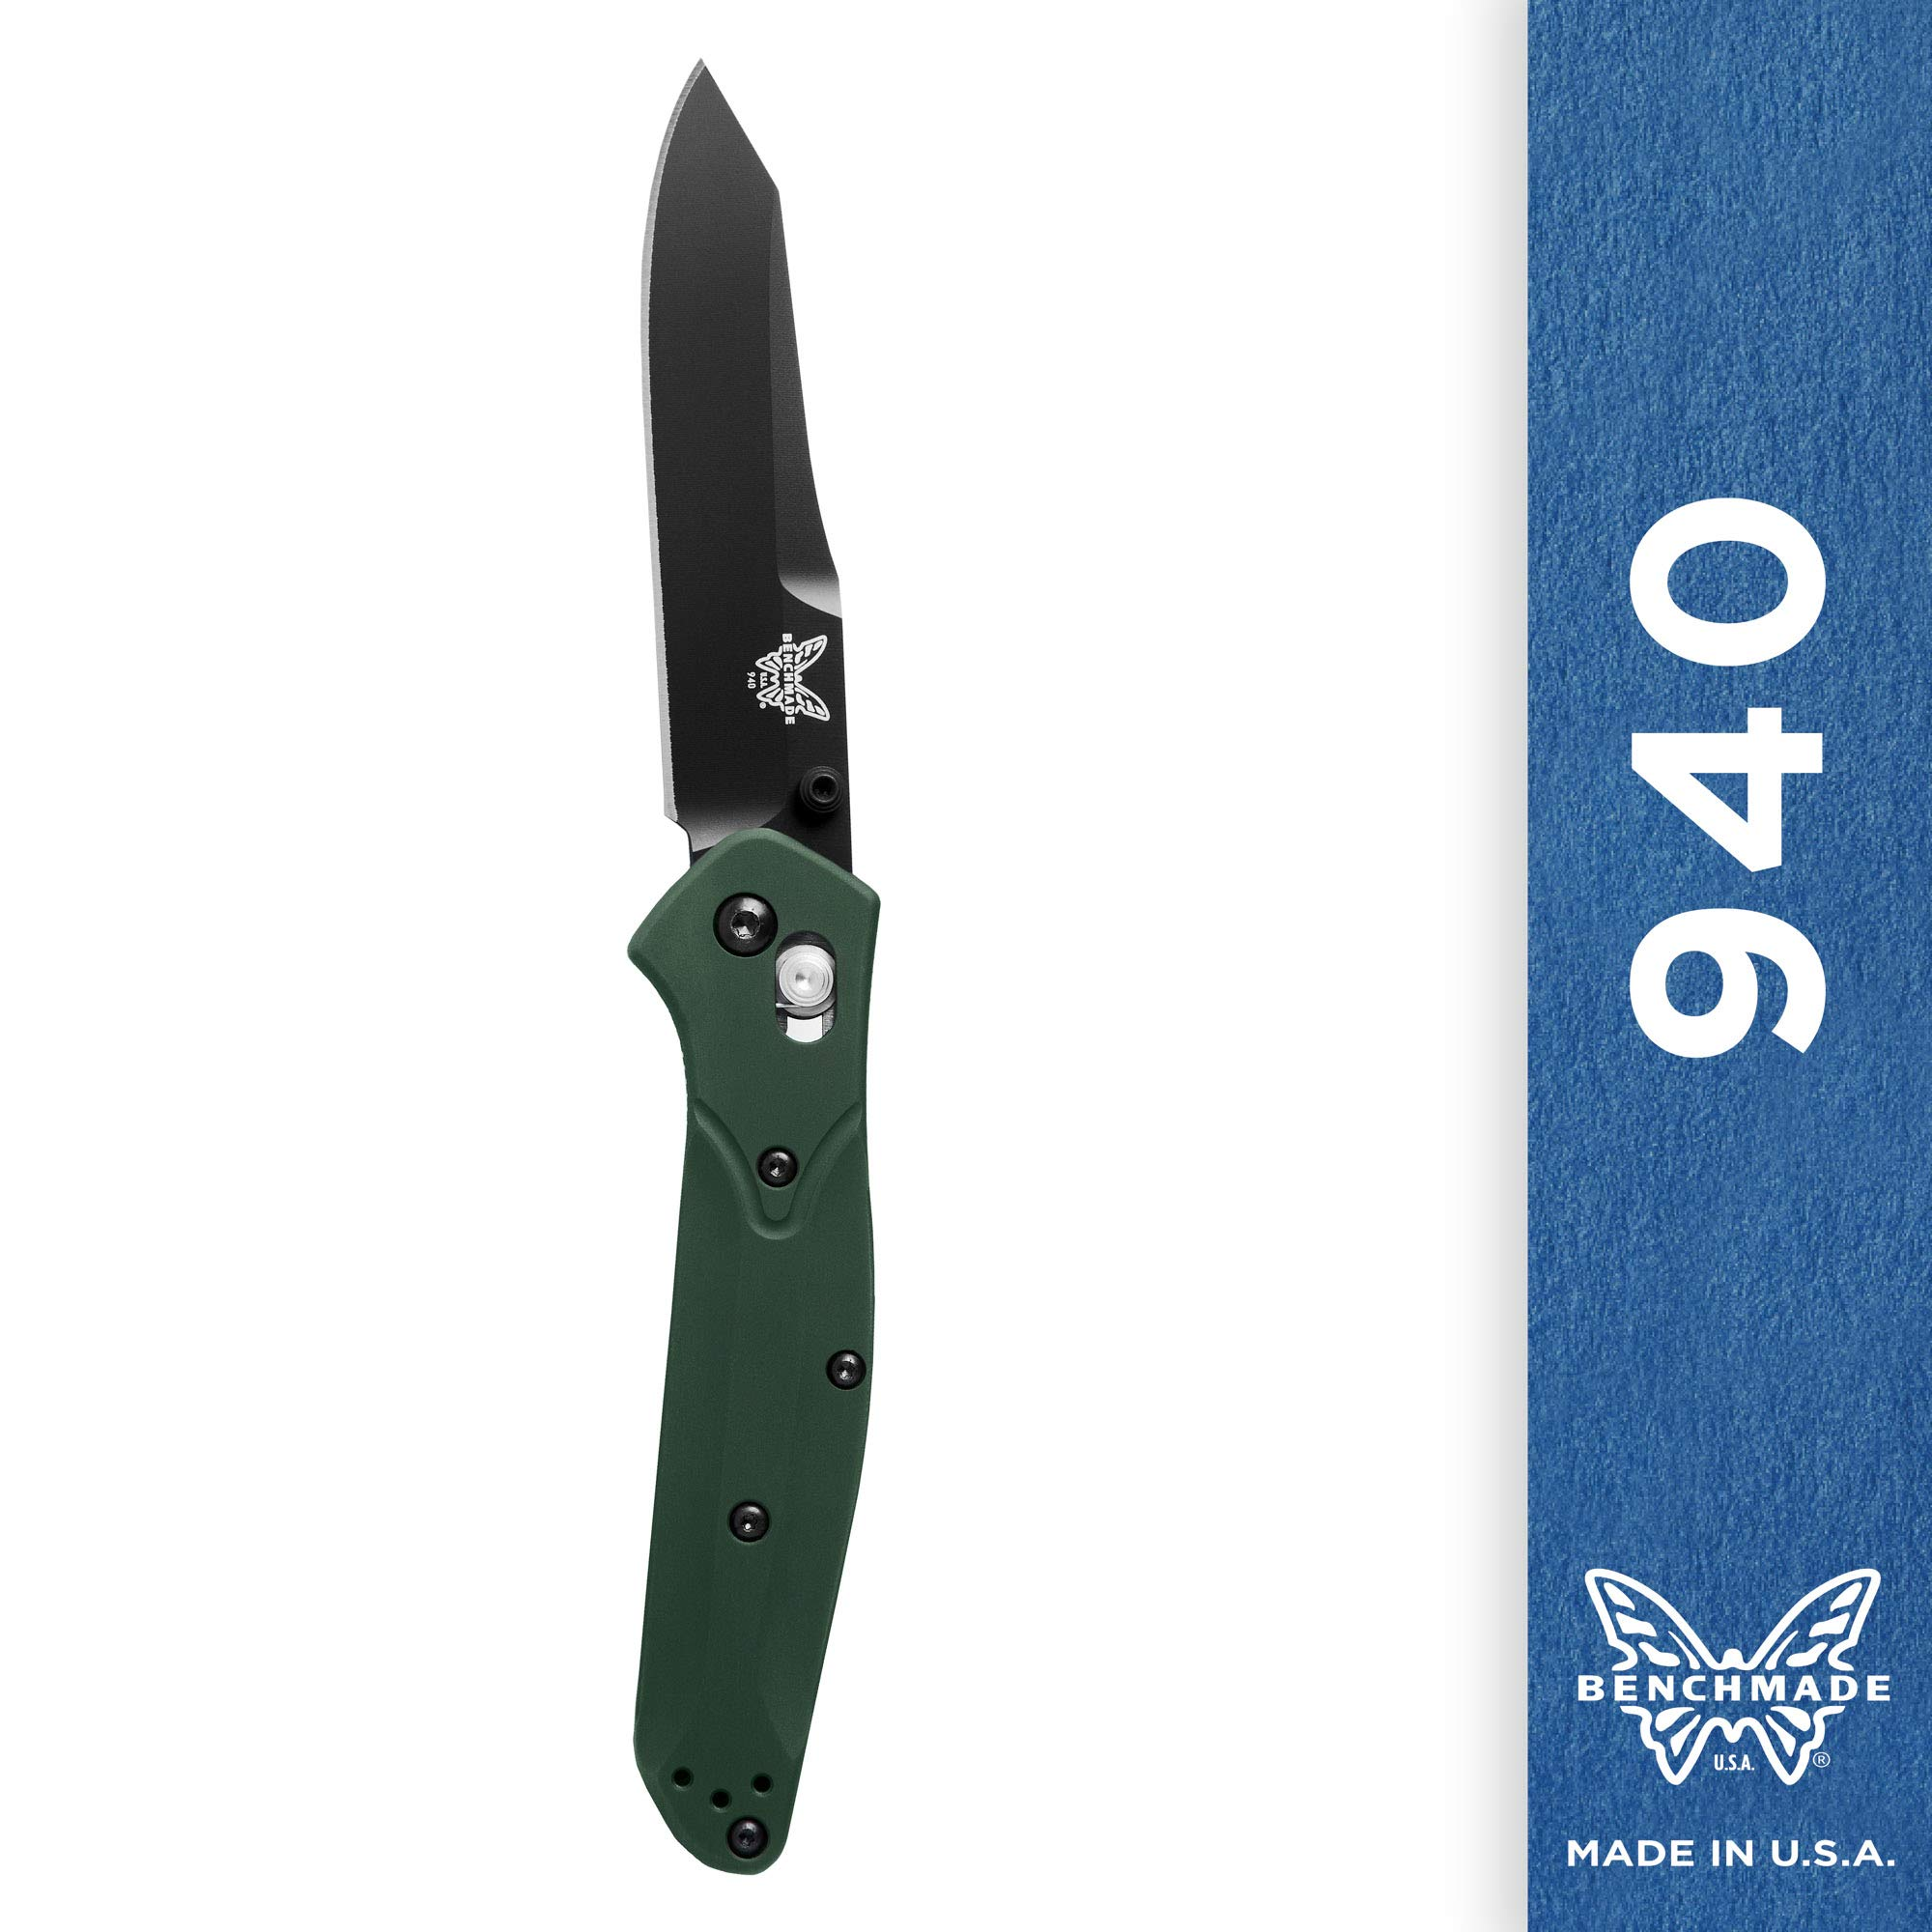 Benchmade - 940 EDC Manual Open Folding Knife Made in USA, Reverse Tanto Blade, Serrated Edge, Coated Finish, Green Handle by Benchmade